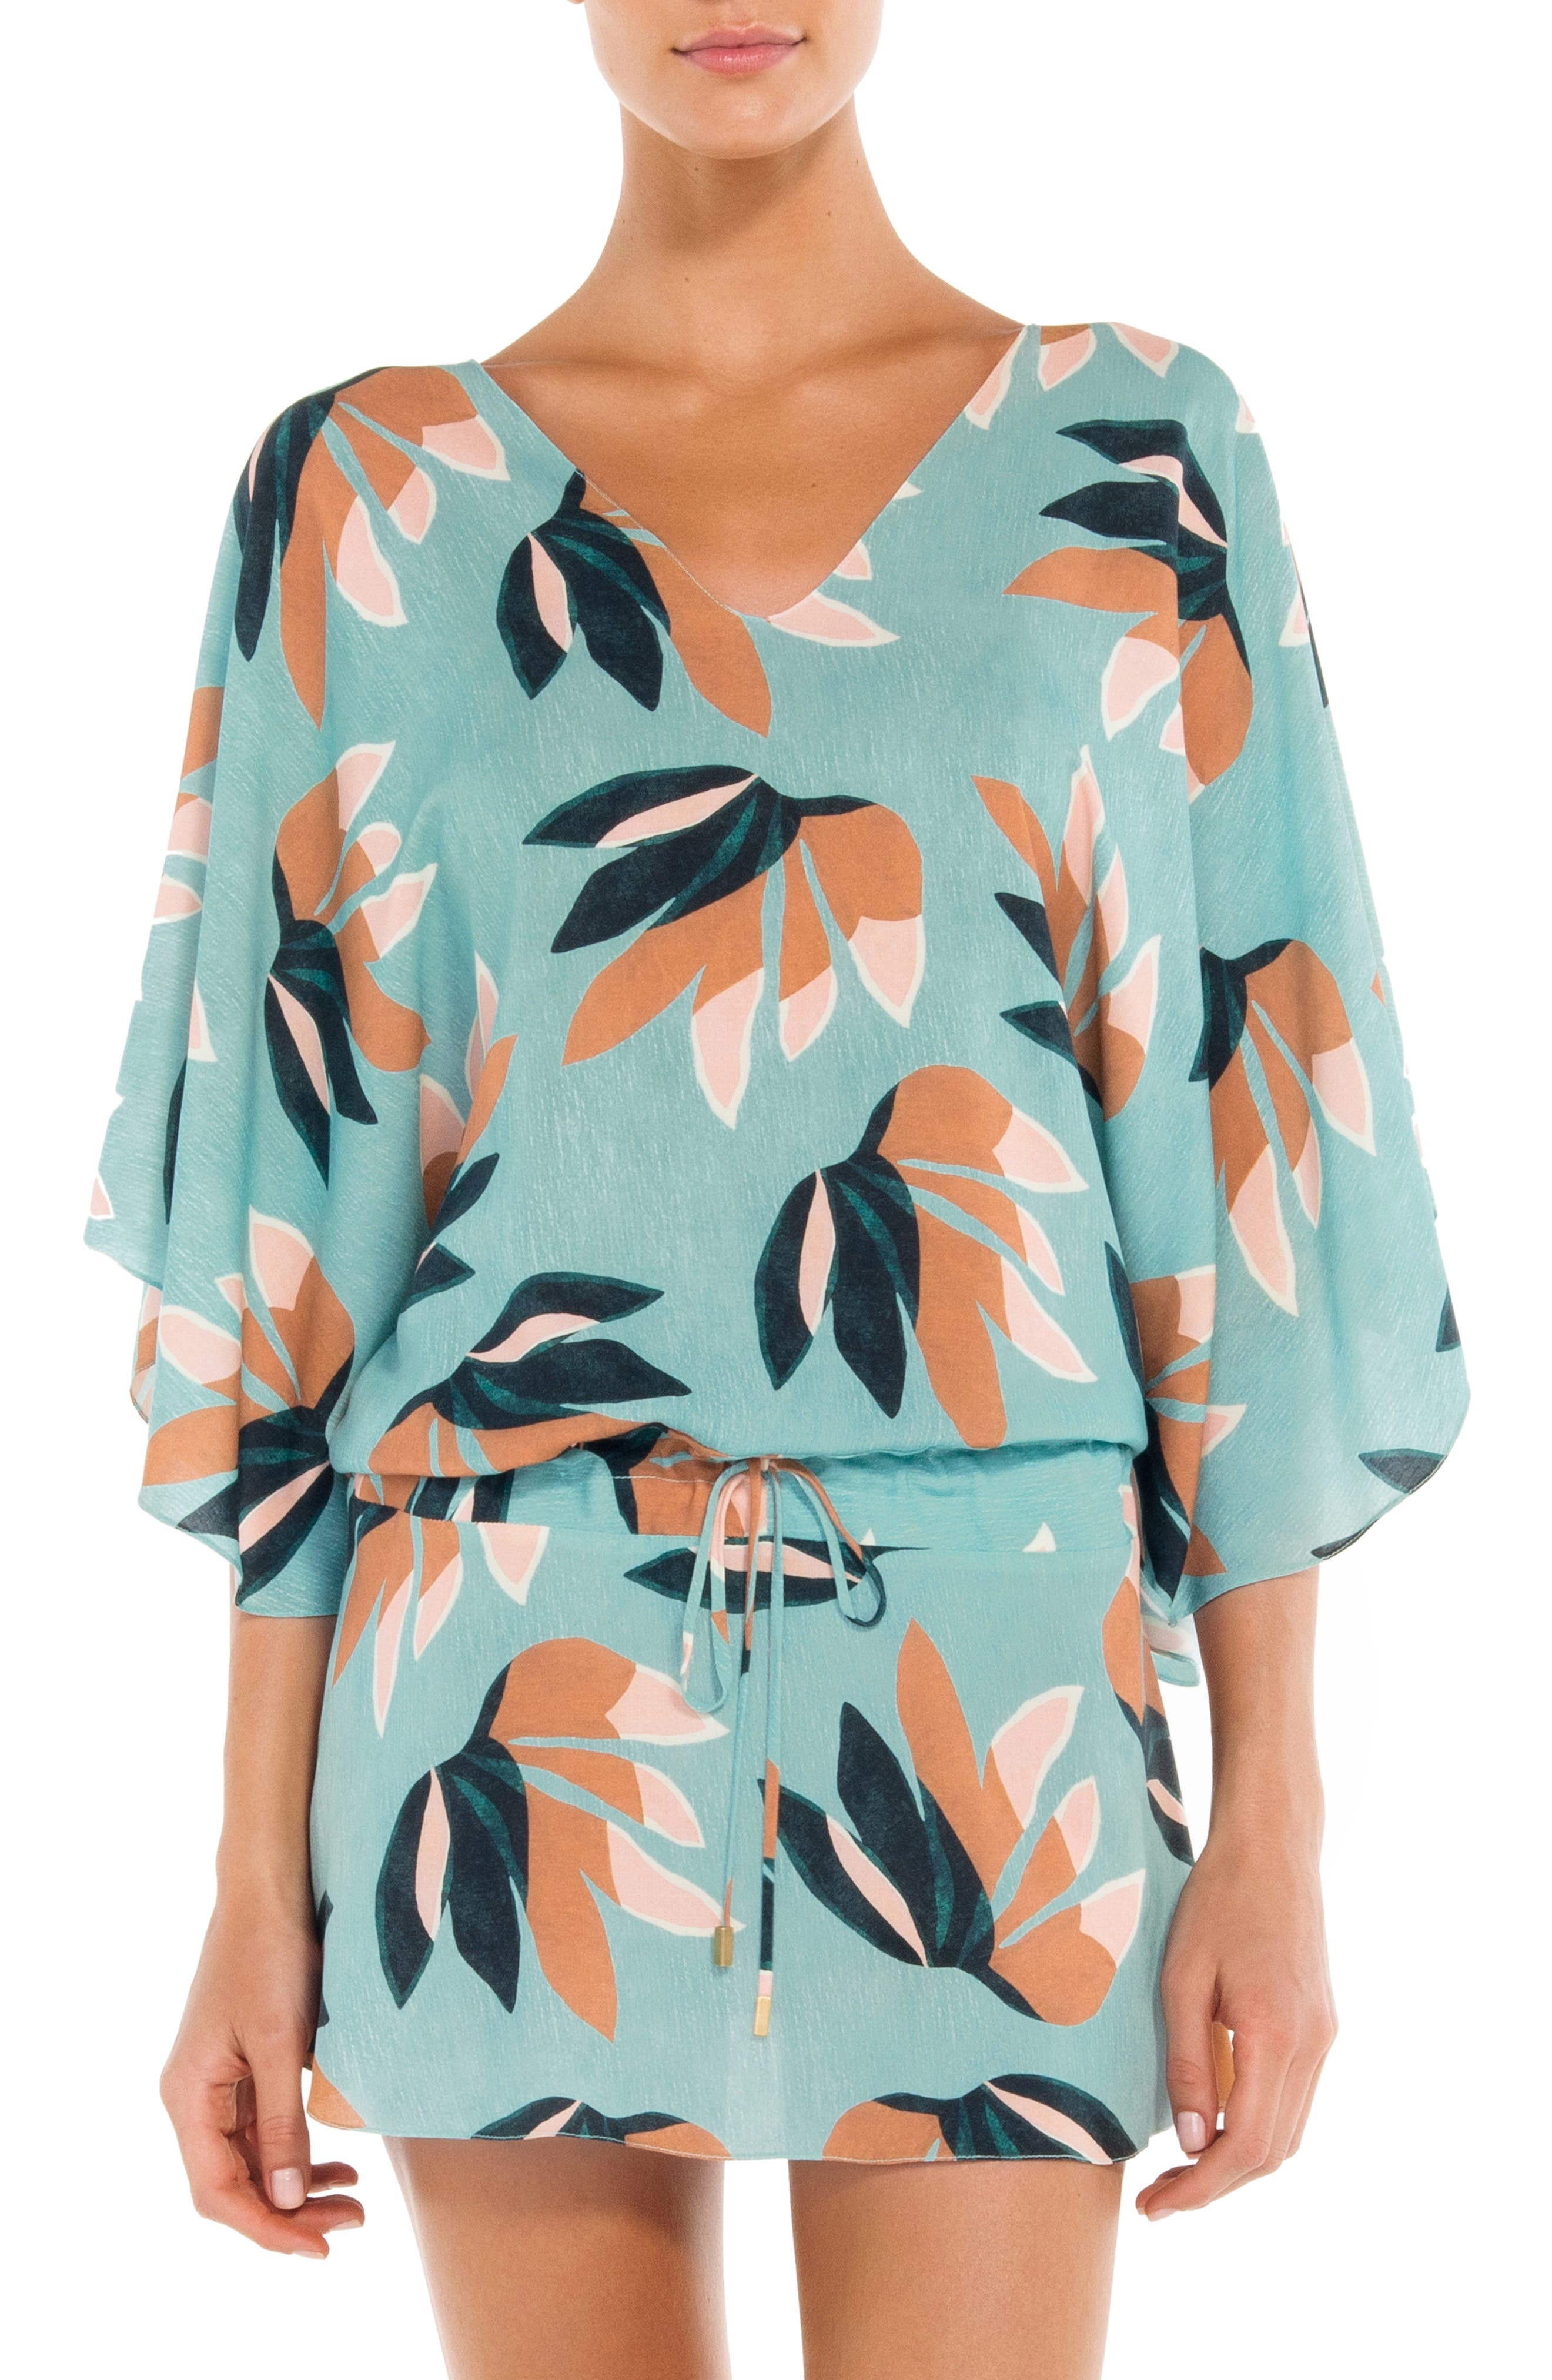 Matisse Vintage Cover-Up Tunic, Main, color, 400